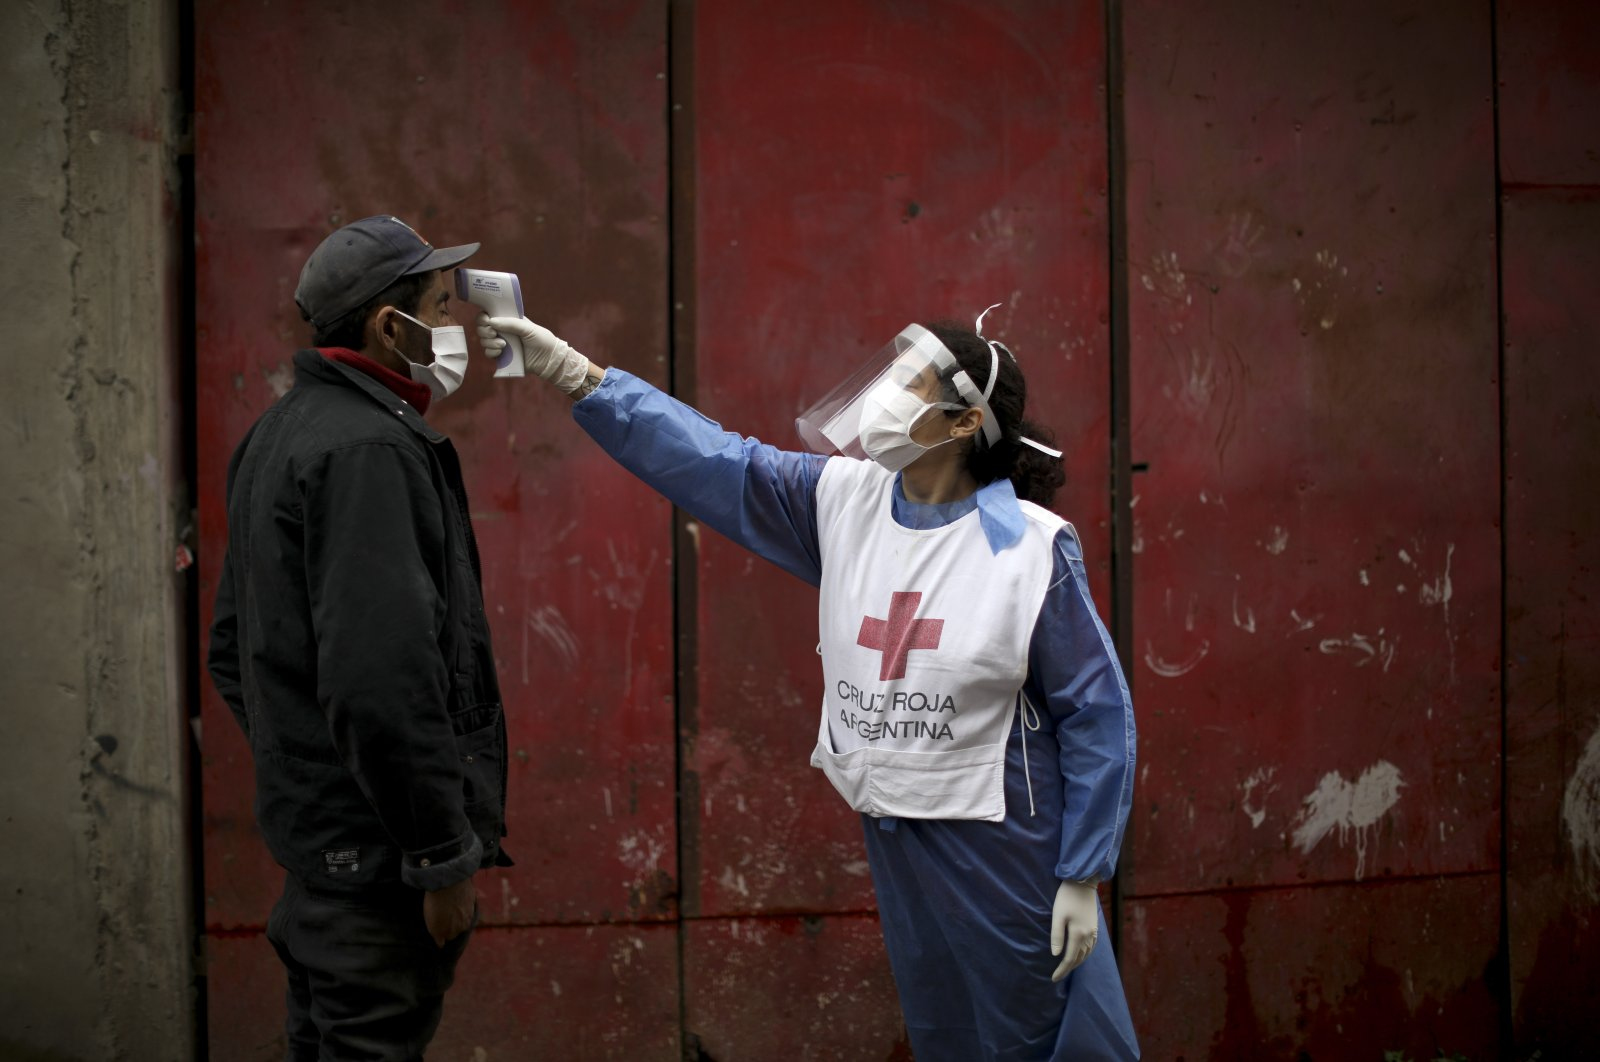 A Red Cross volunteer measures the temperature of a man inside the Fraga slum during a government-ordered lockdown to curb the spread of the new coronavirus, in Buenos Aires, Argentina, June 6, 2020. (AP Photo)